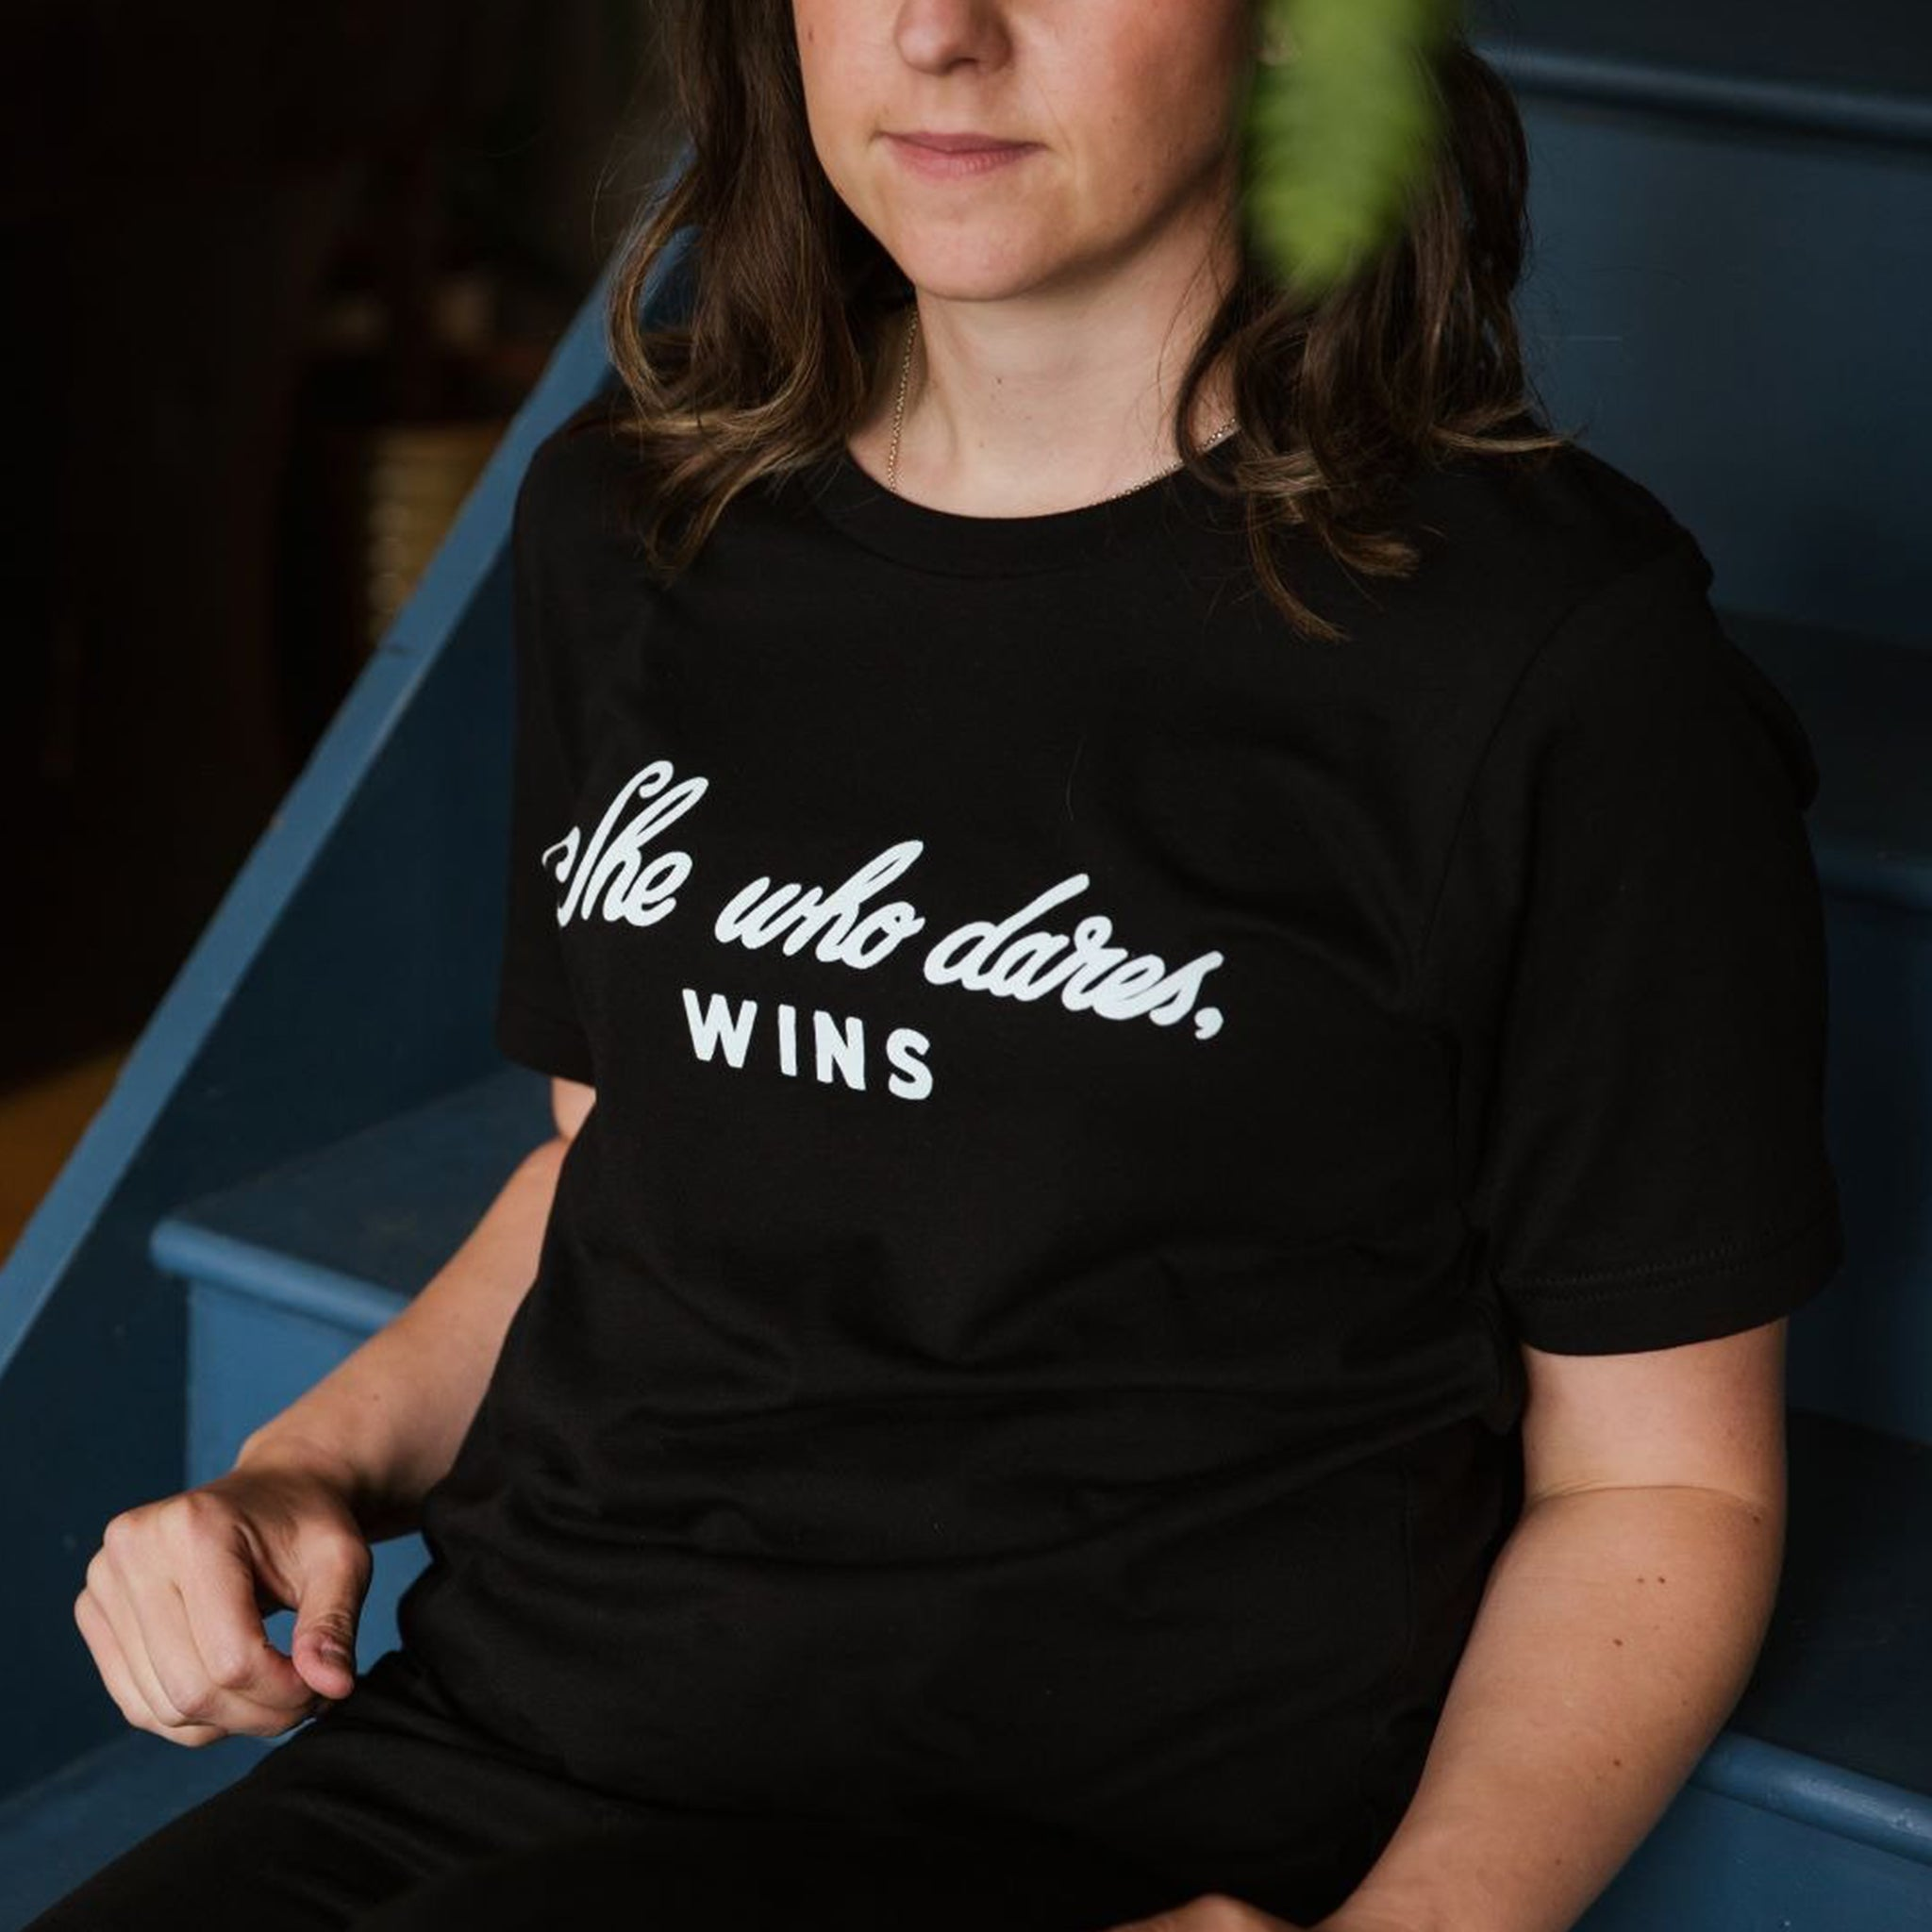 She Who Dares, Wins Black Tee